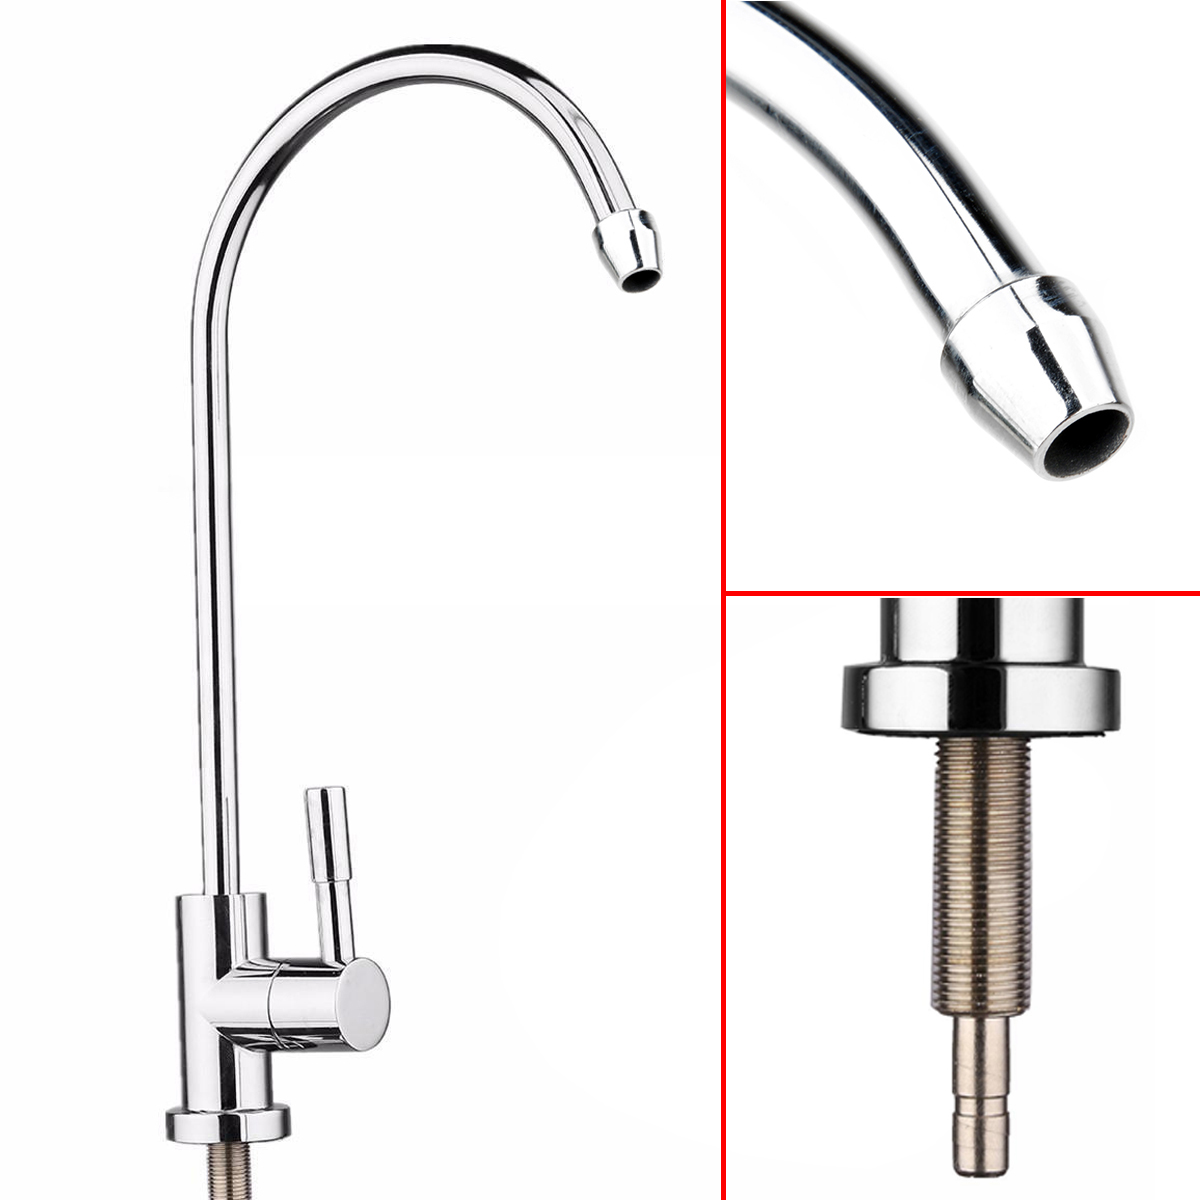 360 Degree Water Kitchen Sink Faucet Chrome Plated Finished Drinking RO Water Filter Reverse Sink Faucets цена